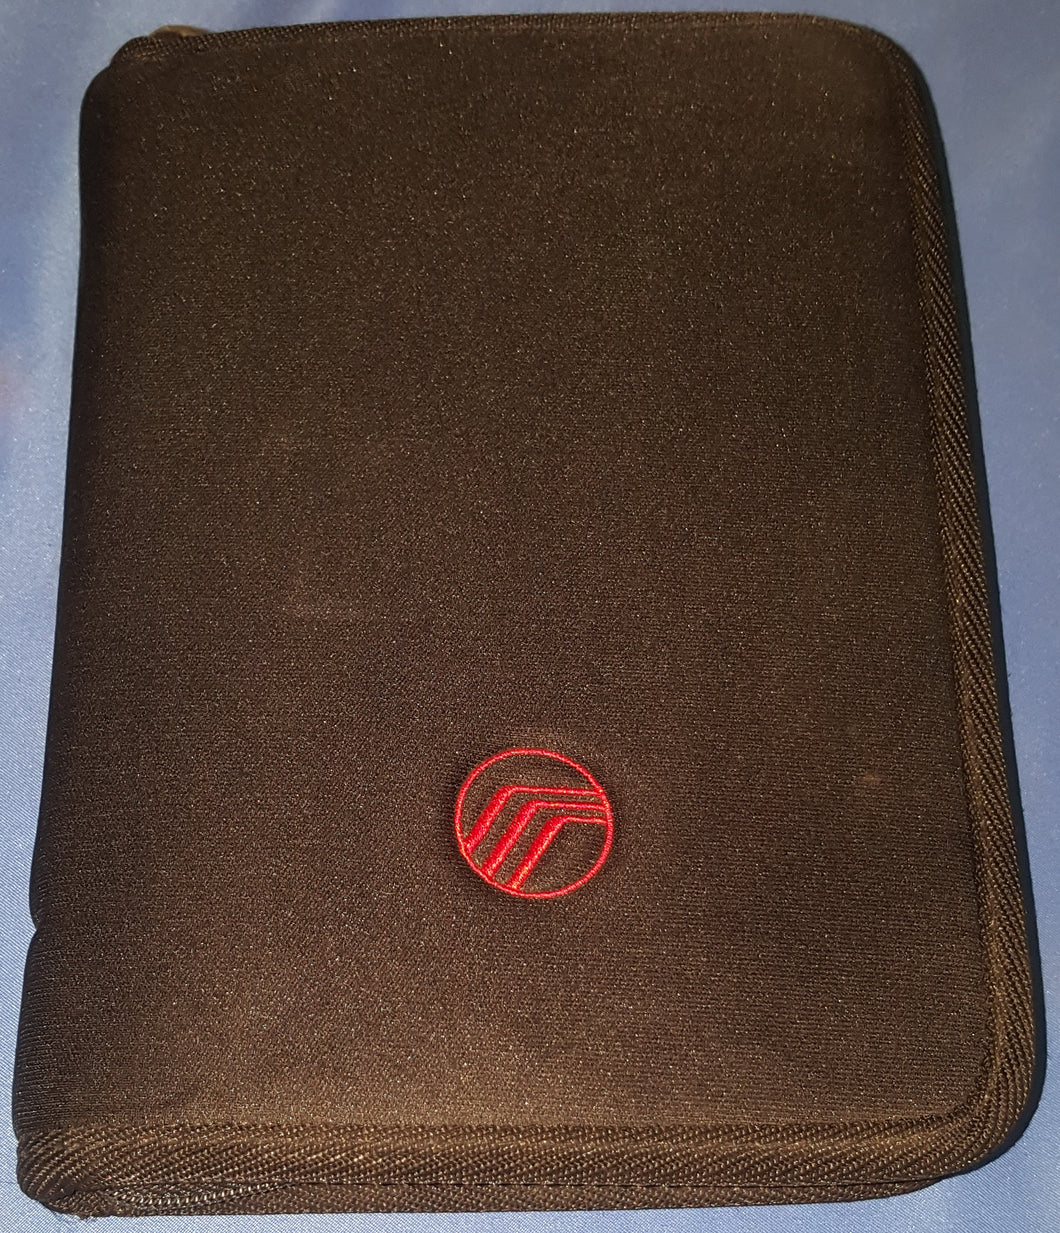 2002 Mercury Mountaineer Owner's Guide and Other Paperwork in Soft Case